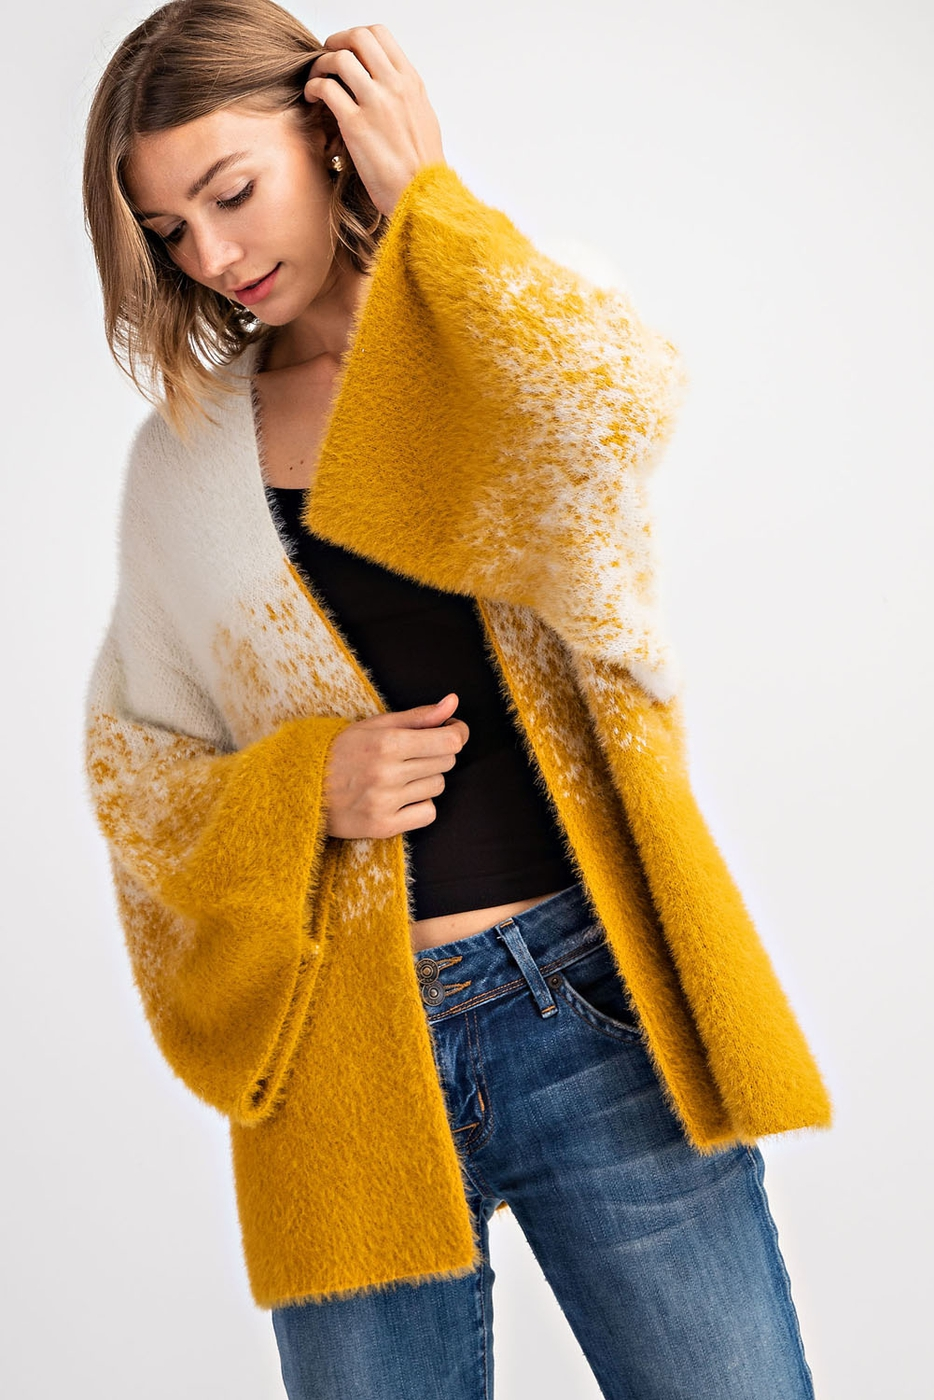 FUZZY OMBRE COLOR CARDIGAN SWEATER - orangeshine.com